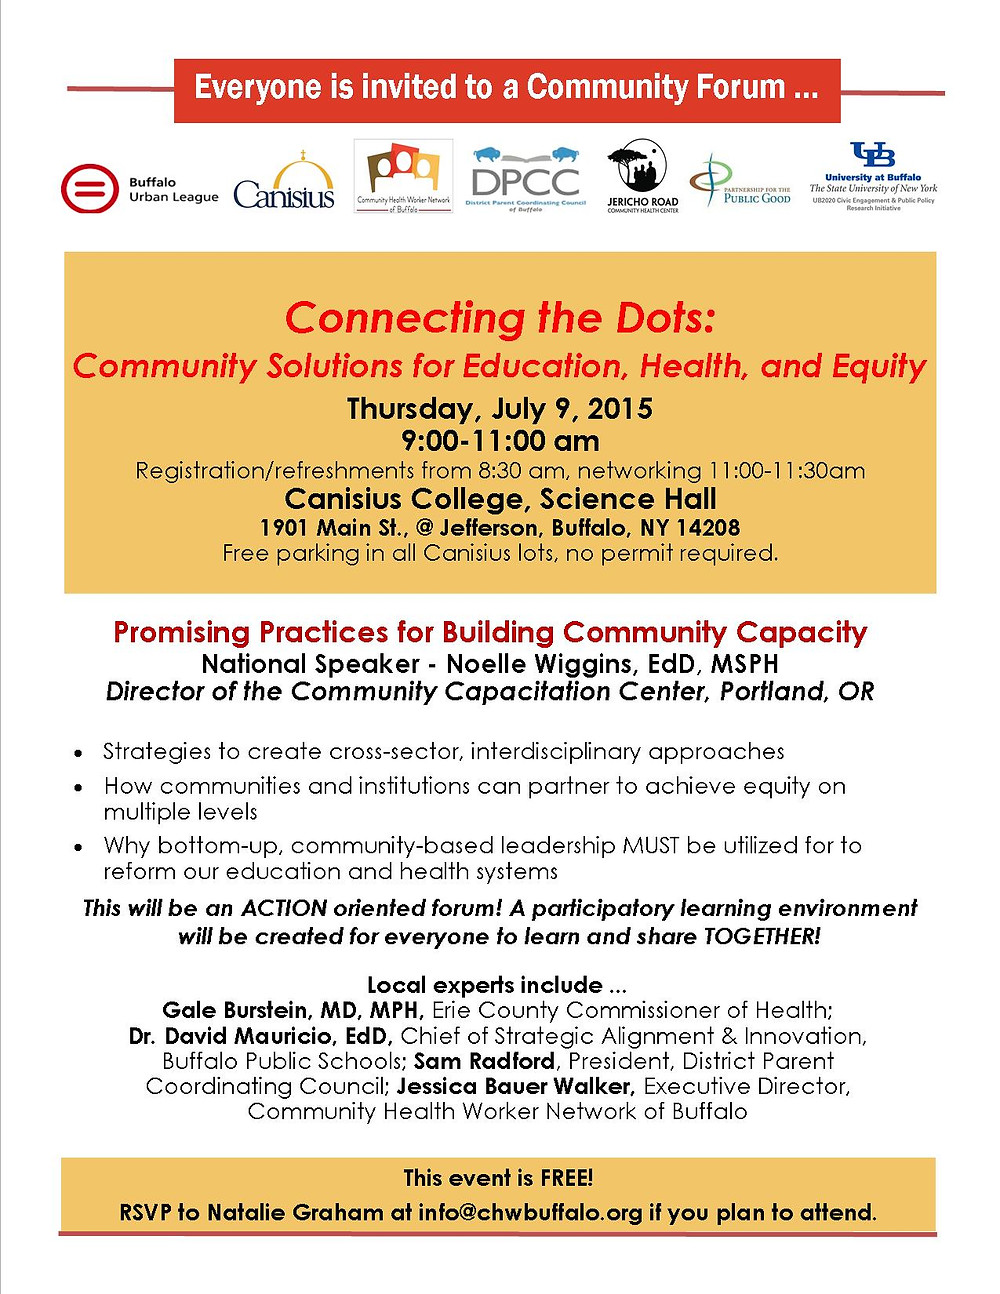 Connecting the Dots Forum Save the Date 7.9.15.jpg